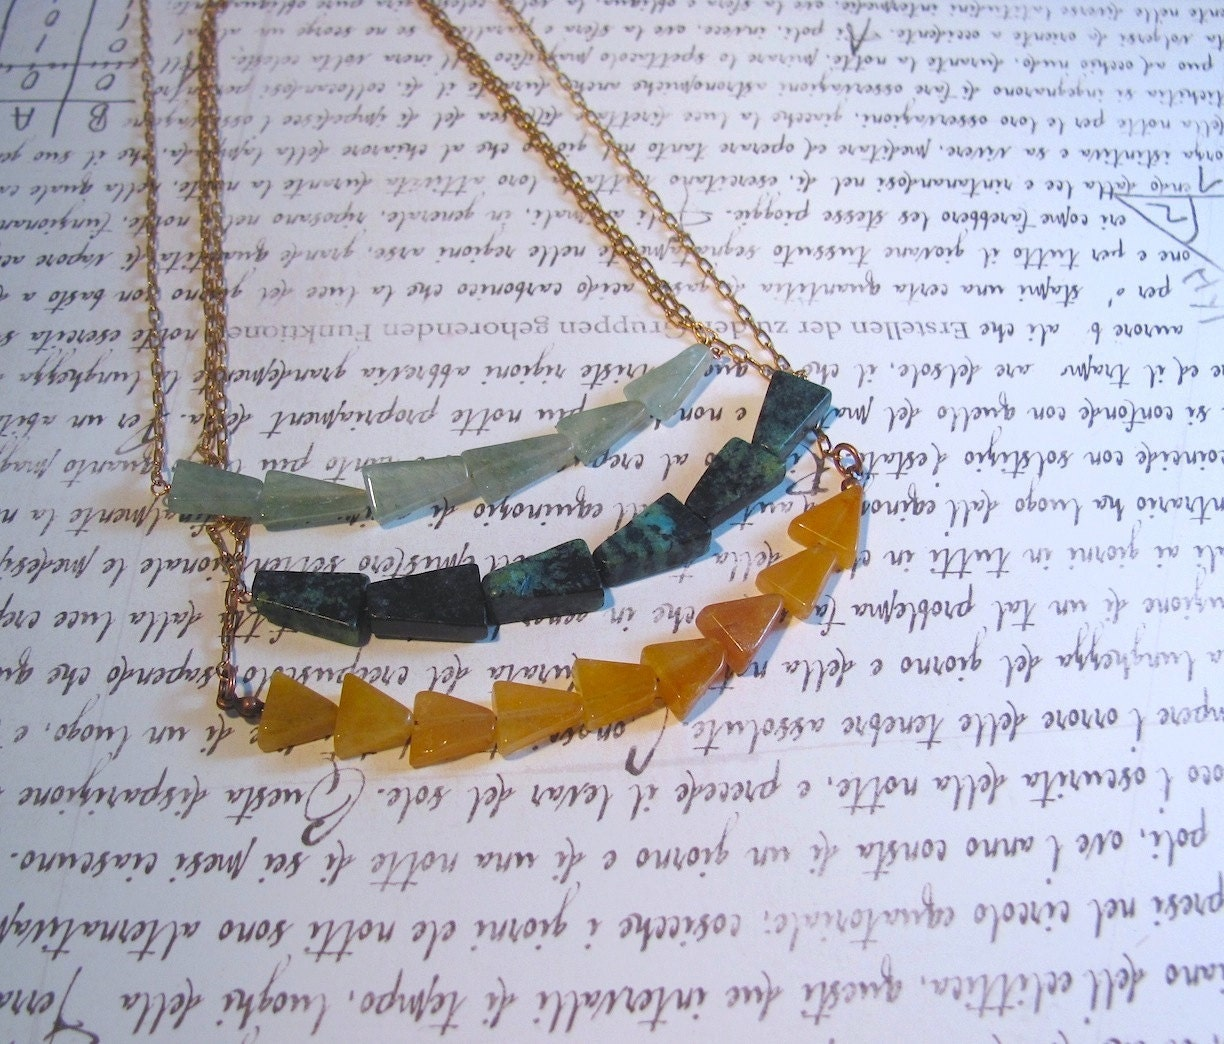 Pennant - Triangle Necklace with Copper Chain & Gemstone: Green Aventurine / Blue Turquoise / Orange Jade